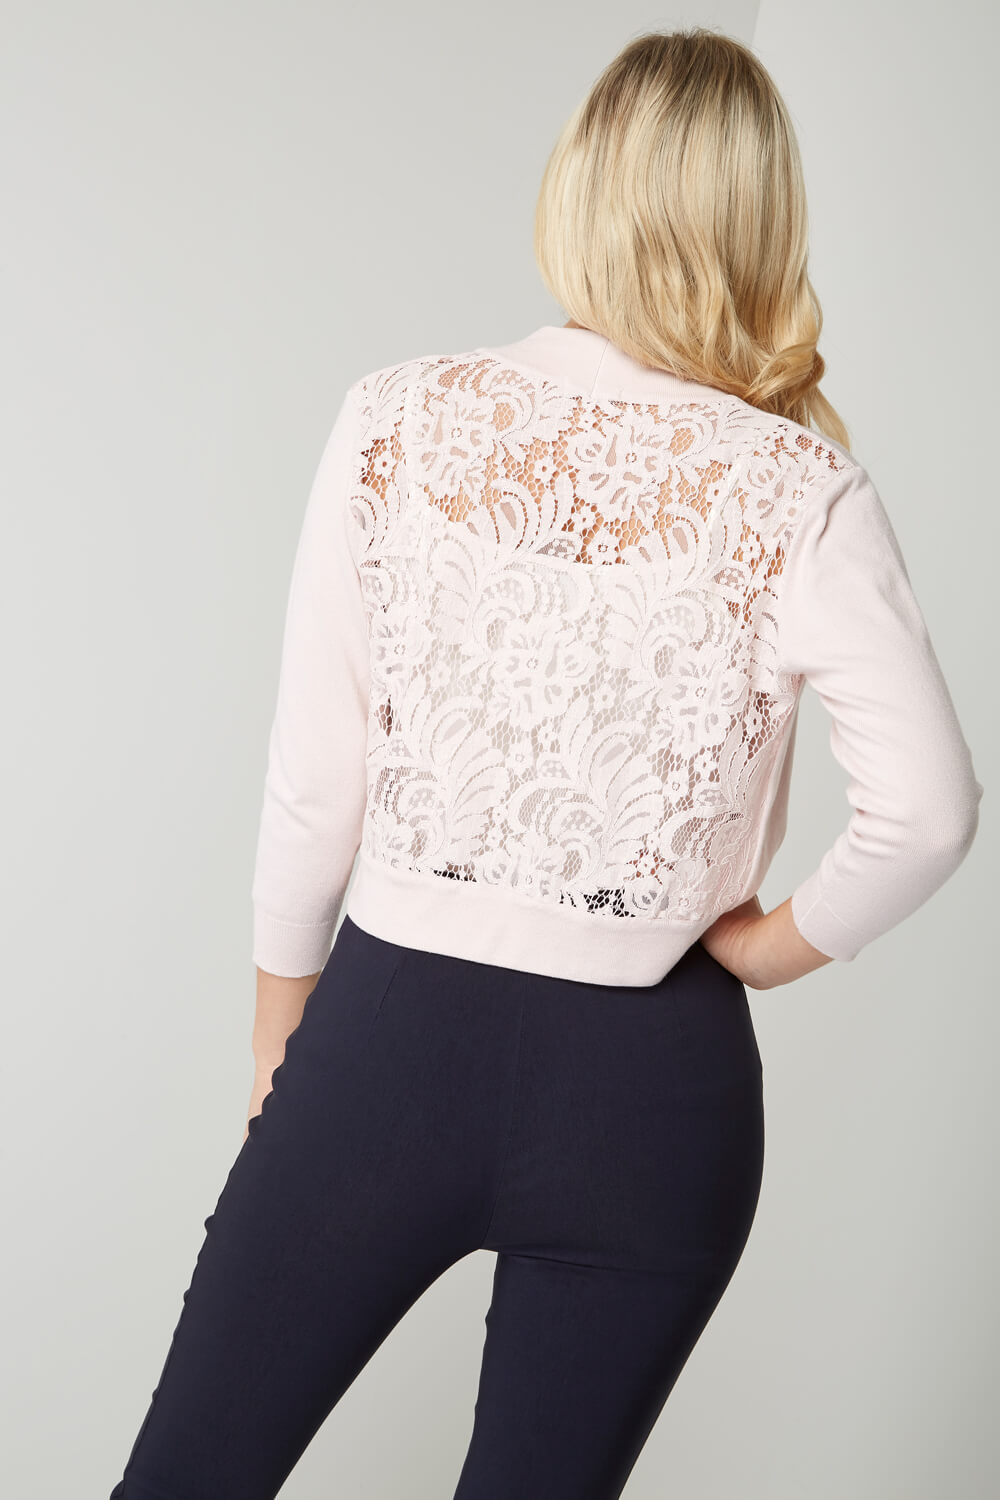 Roman-Originals-Women-039-s-White-Lace-Back-Shrug-Cardigan-Sizes-10-20 thumbnail 34